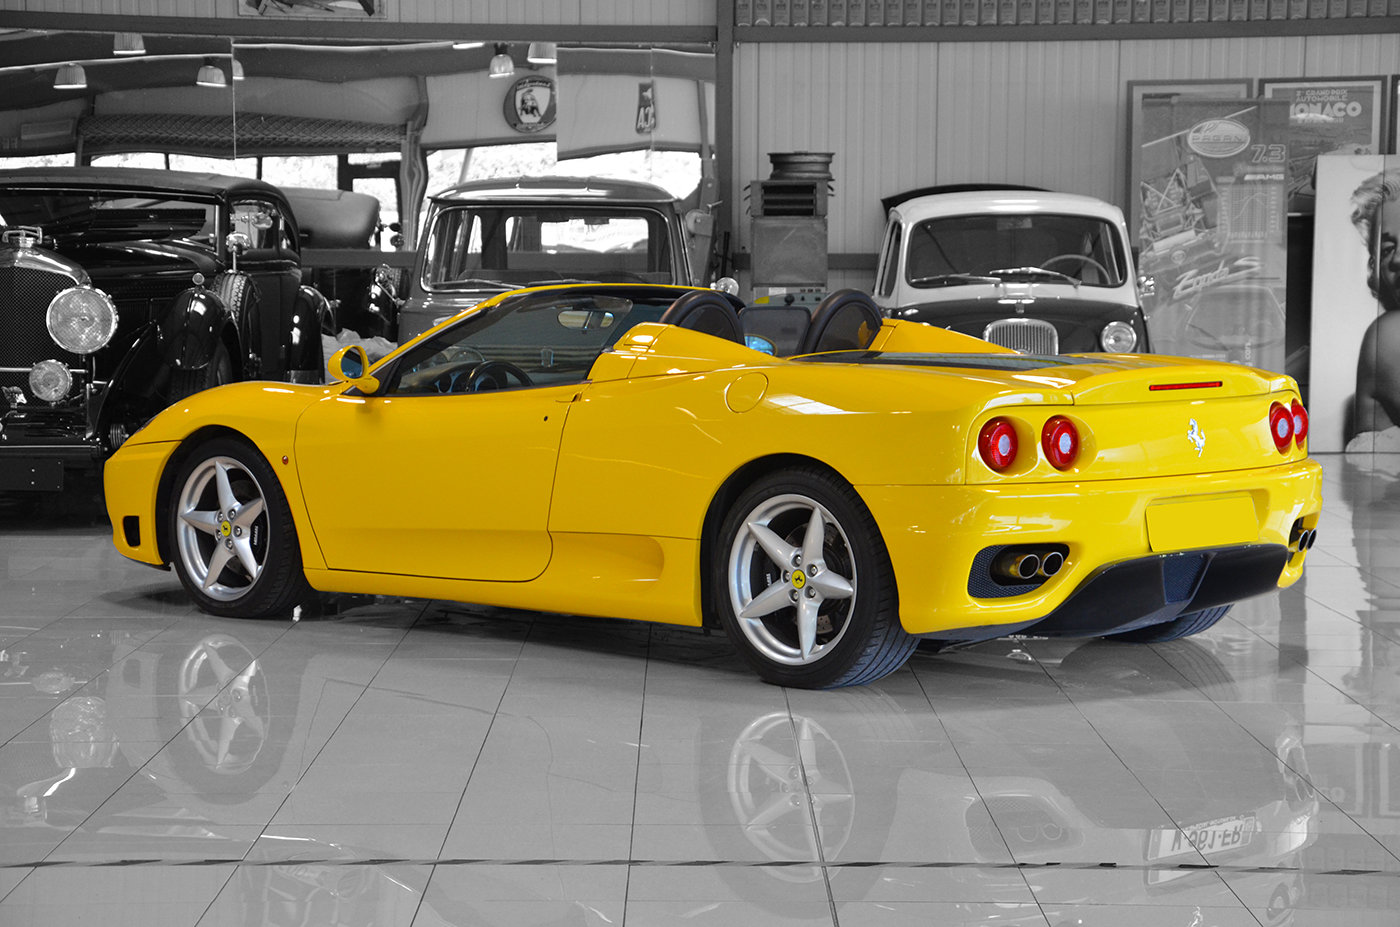 2001 - Ferrari 360 Spider Manual LHD Giallo Modena For Sale (picture 3 of 6)